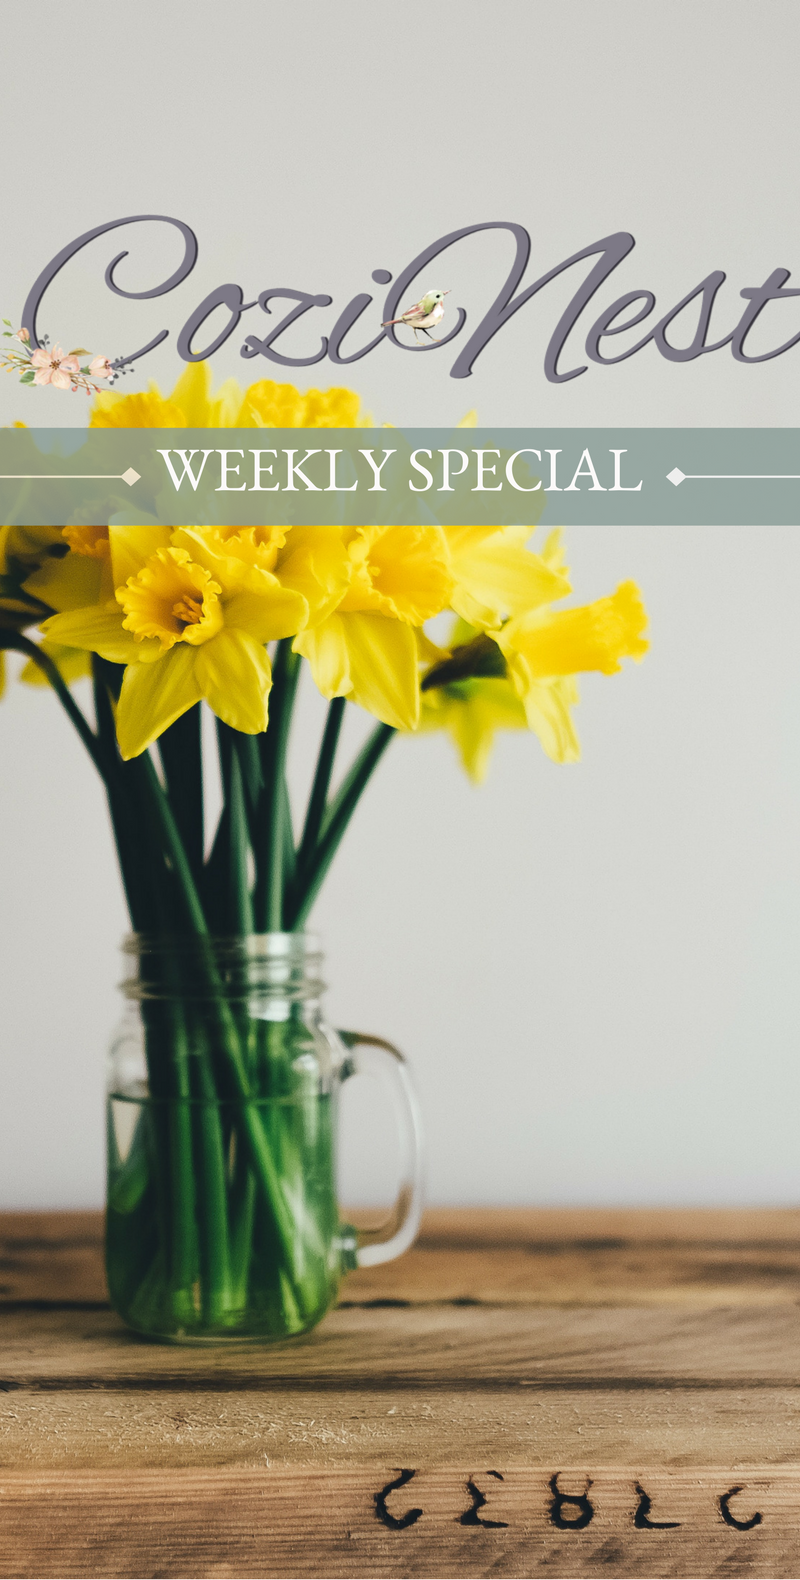 The Sweet Aroma of this Weekly Special March 12, 2018